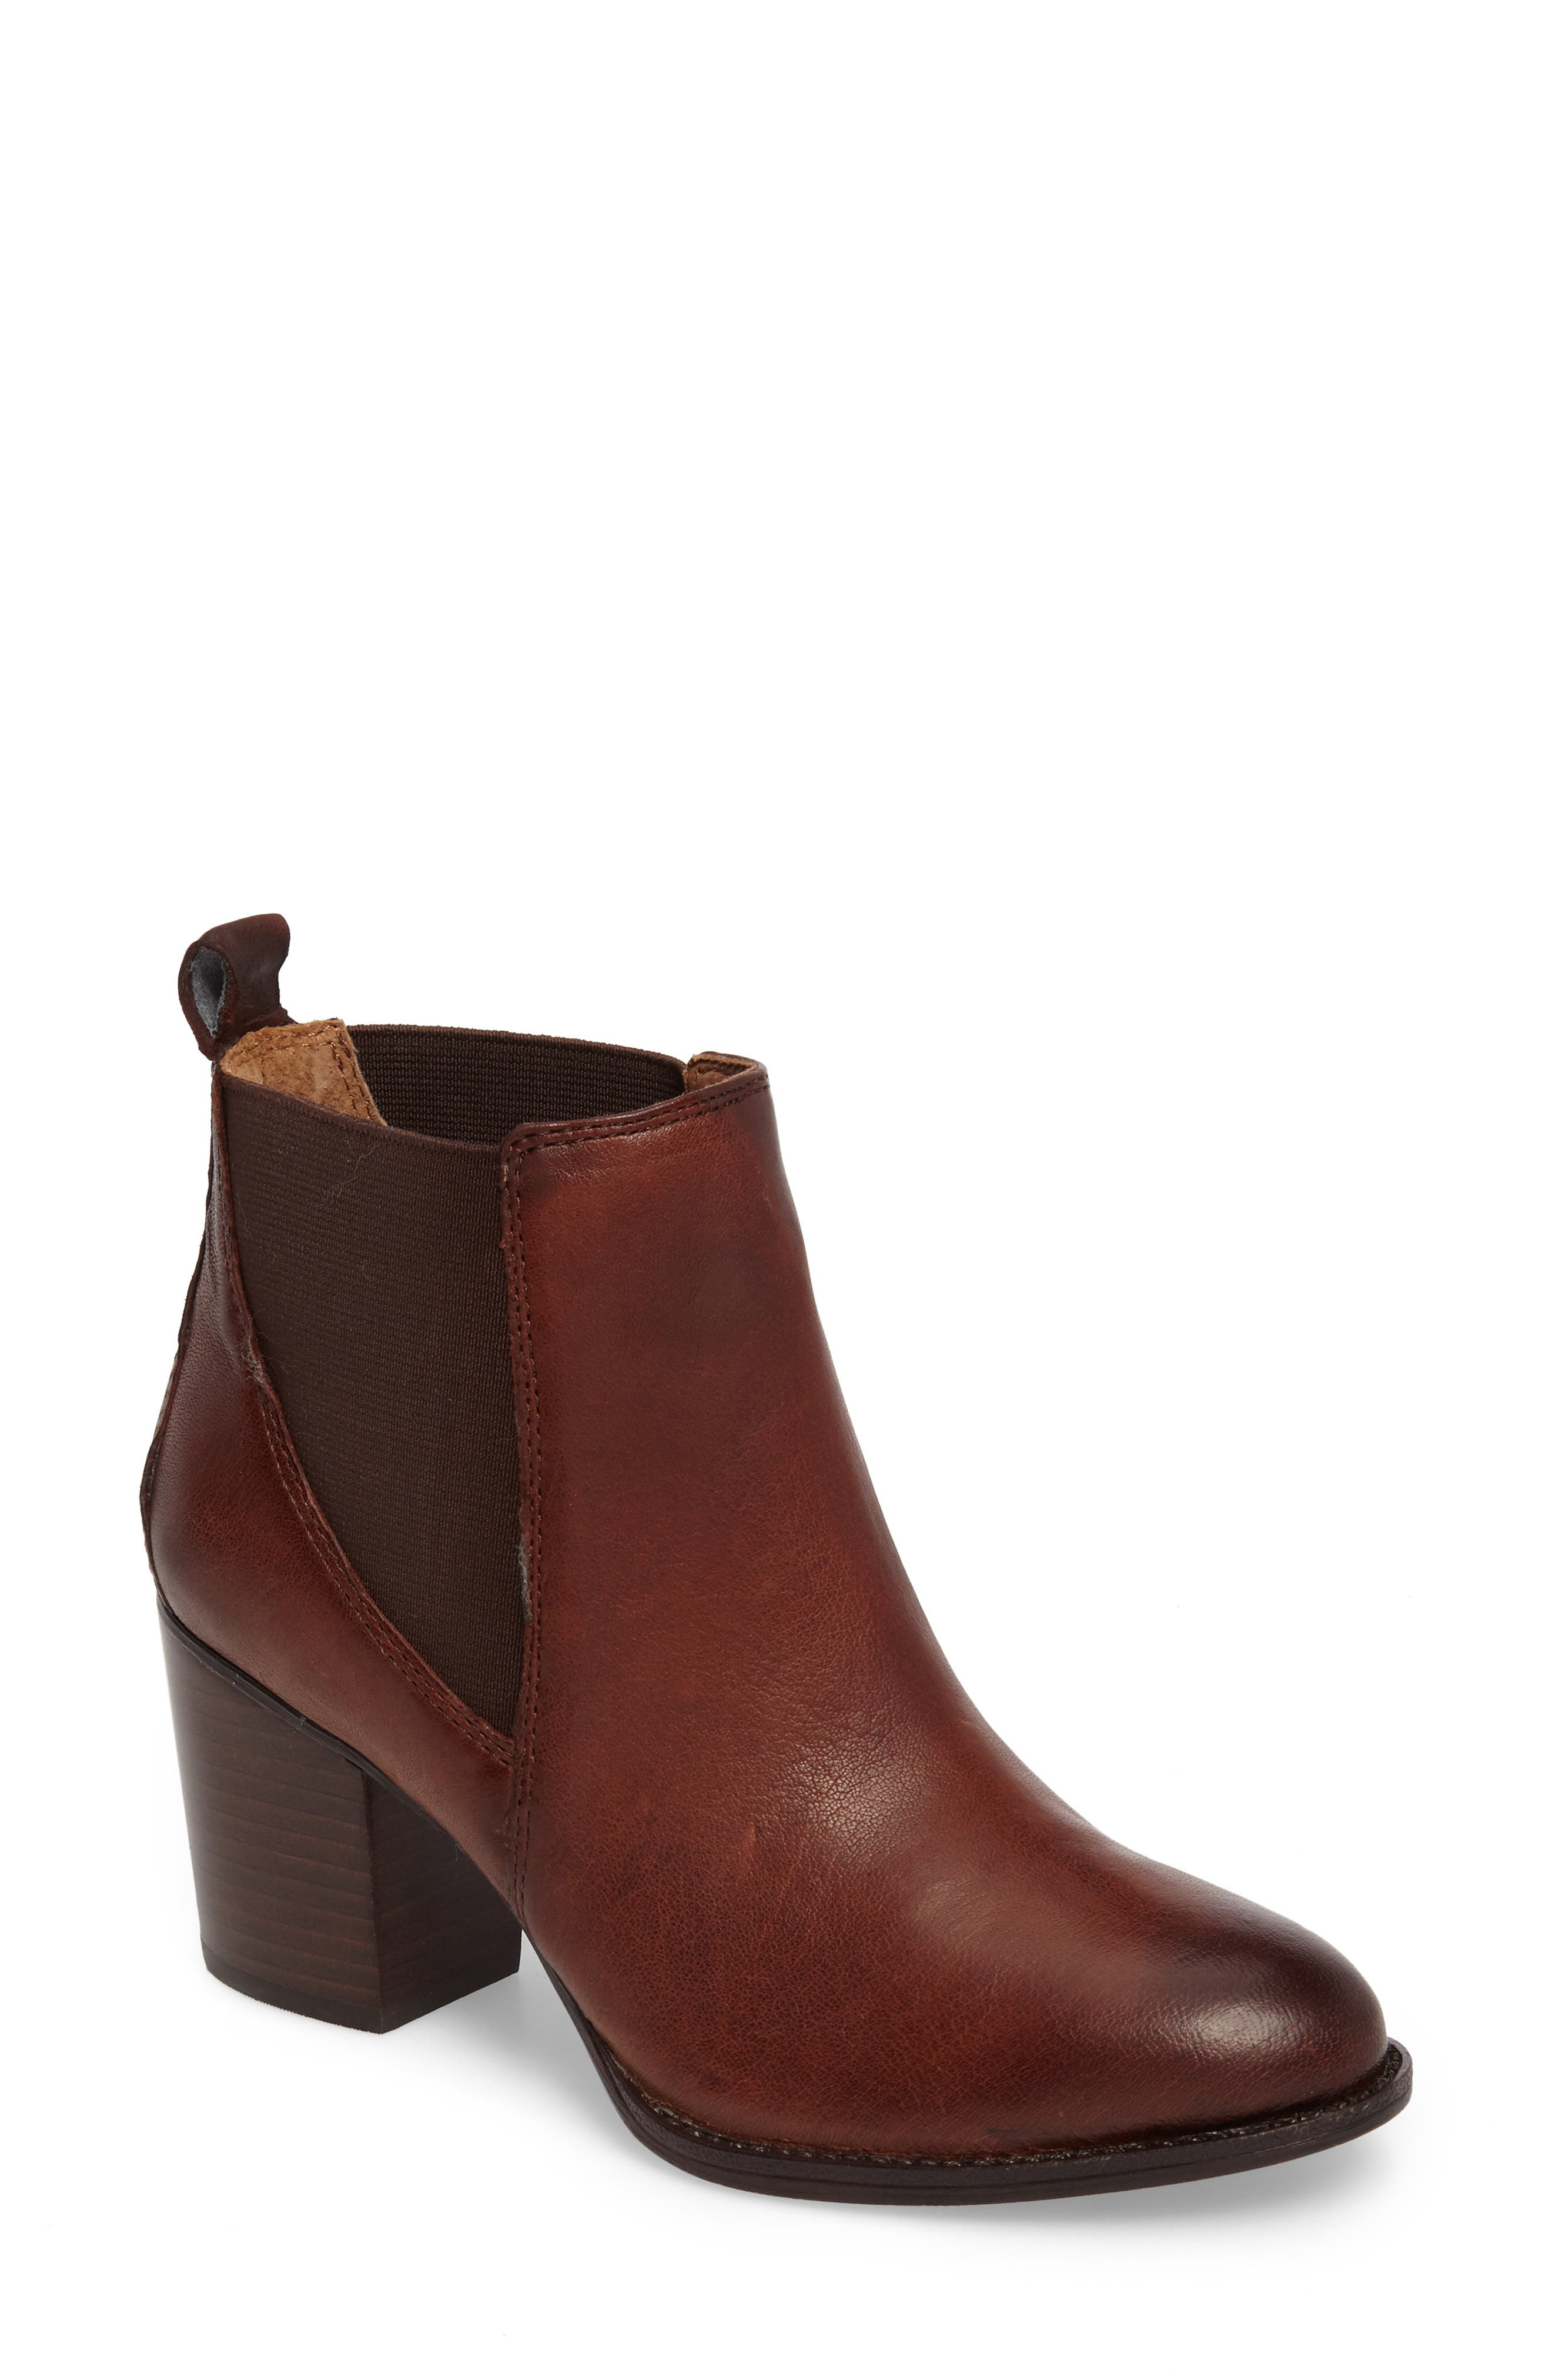 Welling Bootie,                             Main thumbnail 1, color,                             CAFFE LEATHER